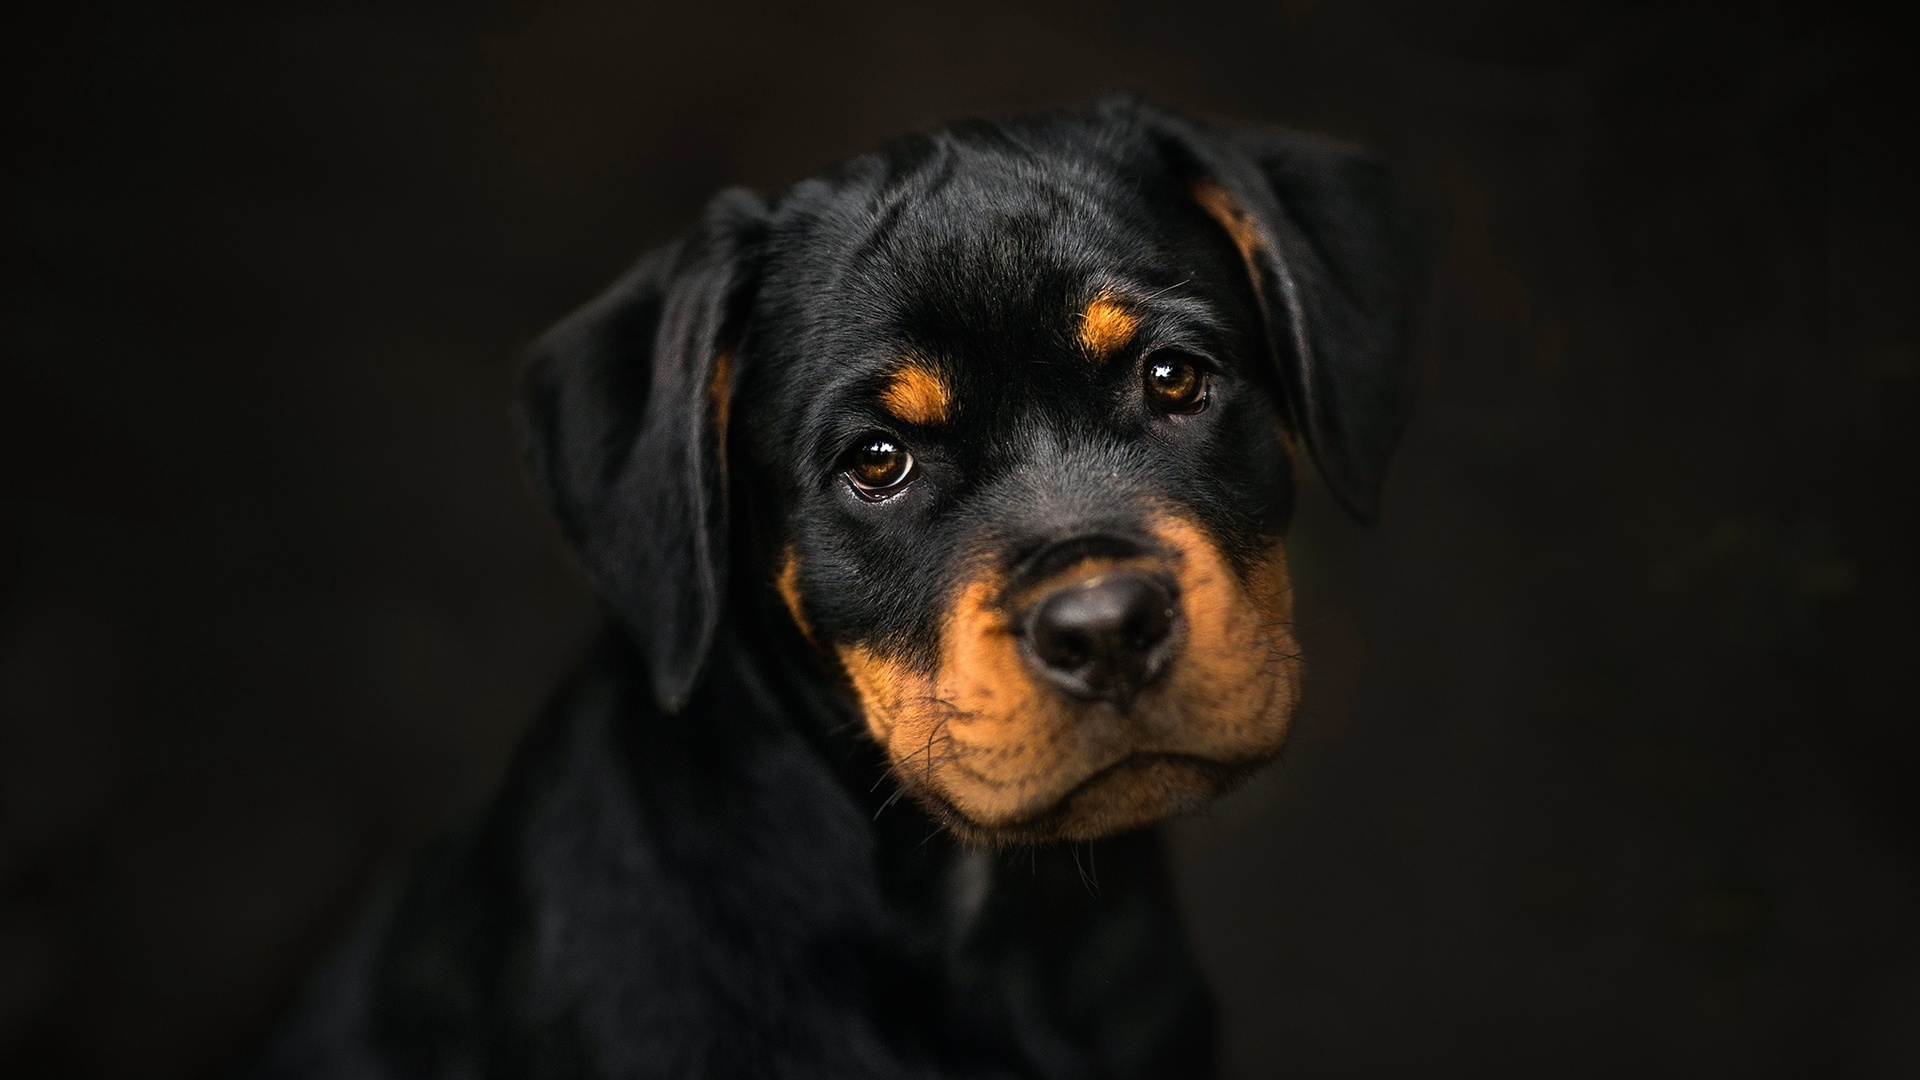 1920x1080 Rottweiler Laptop Full Hd 1080p Hd 4k Wallpapers Images